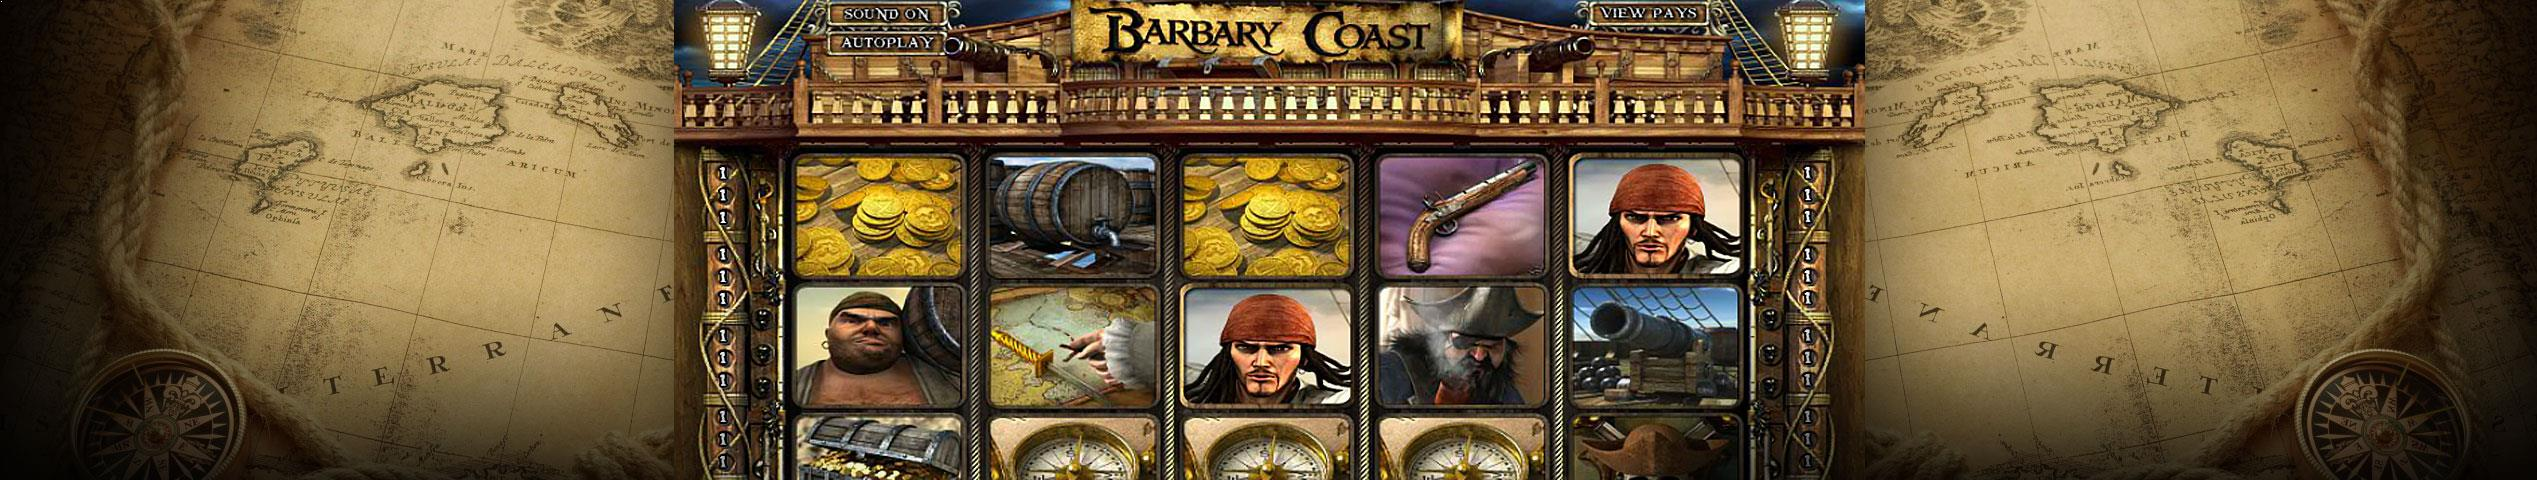 Barbary Coast Multa Baft jocuri slot slider Betsoft